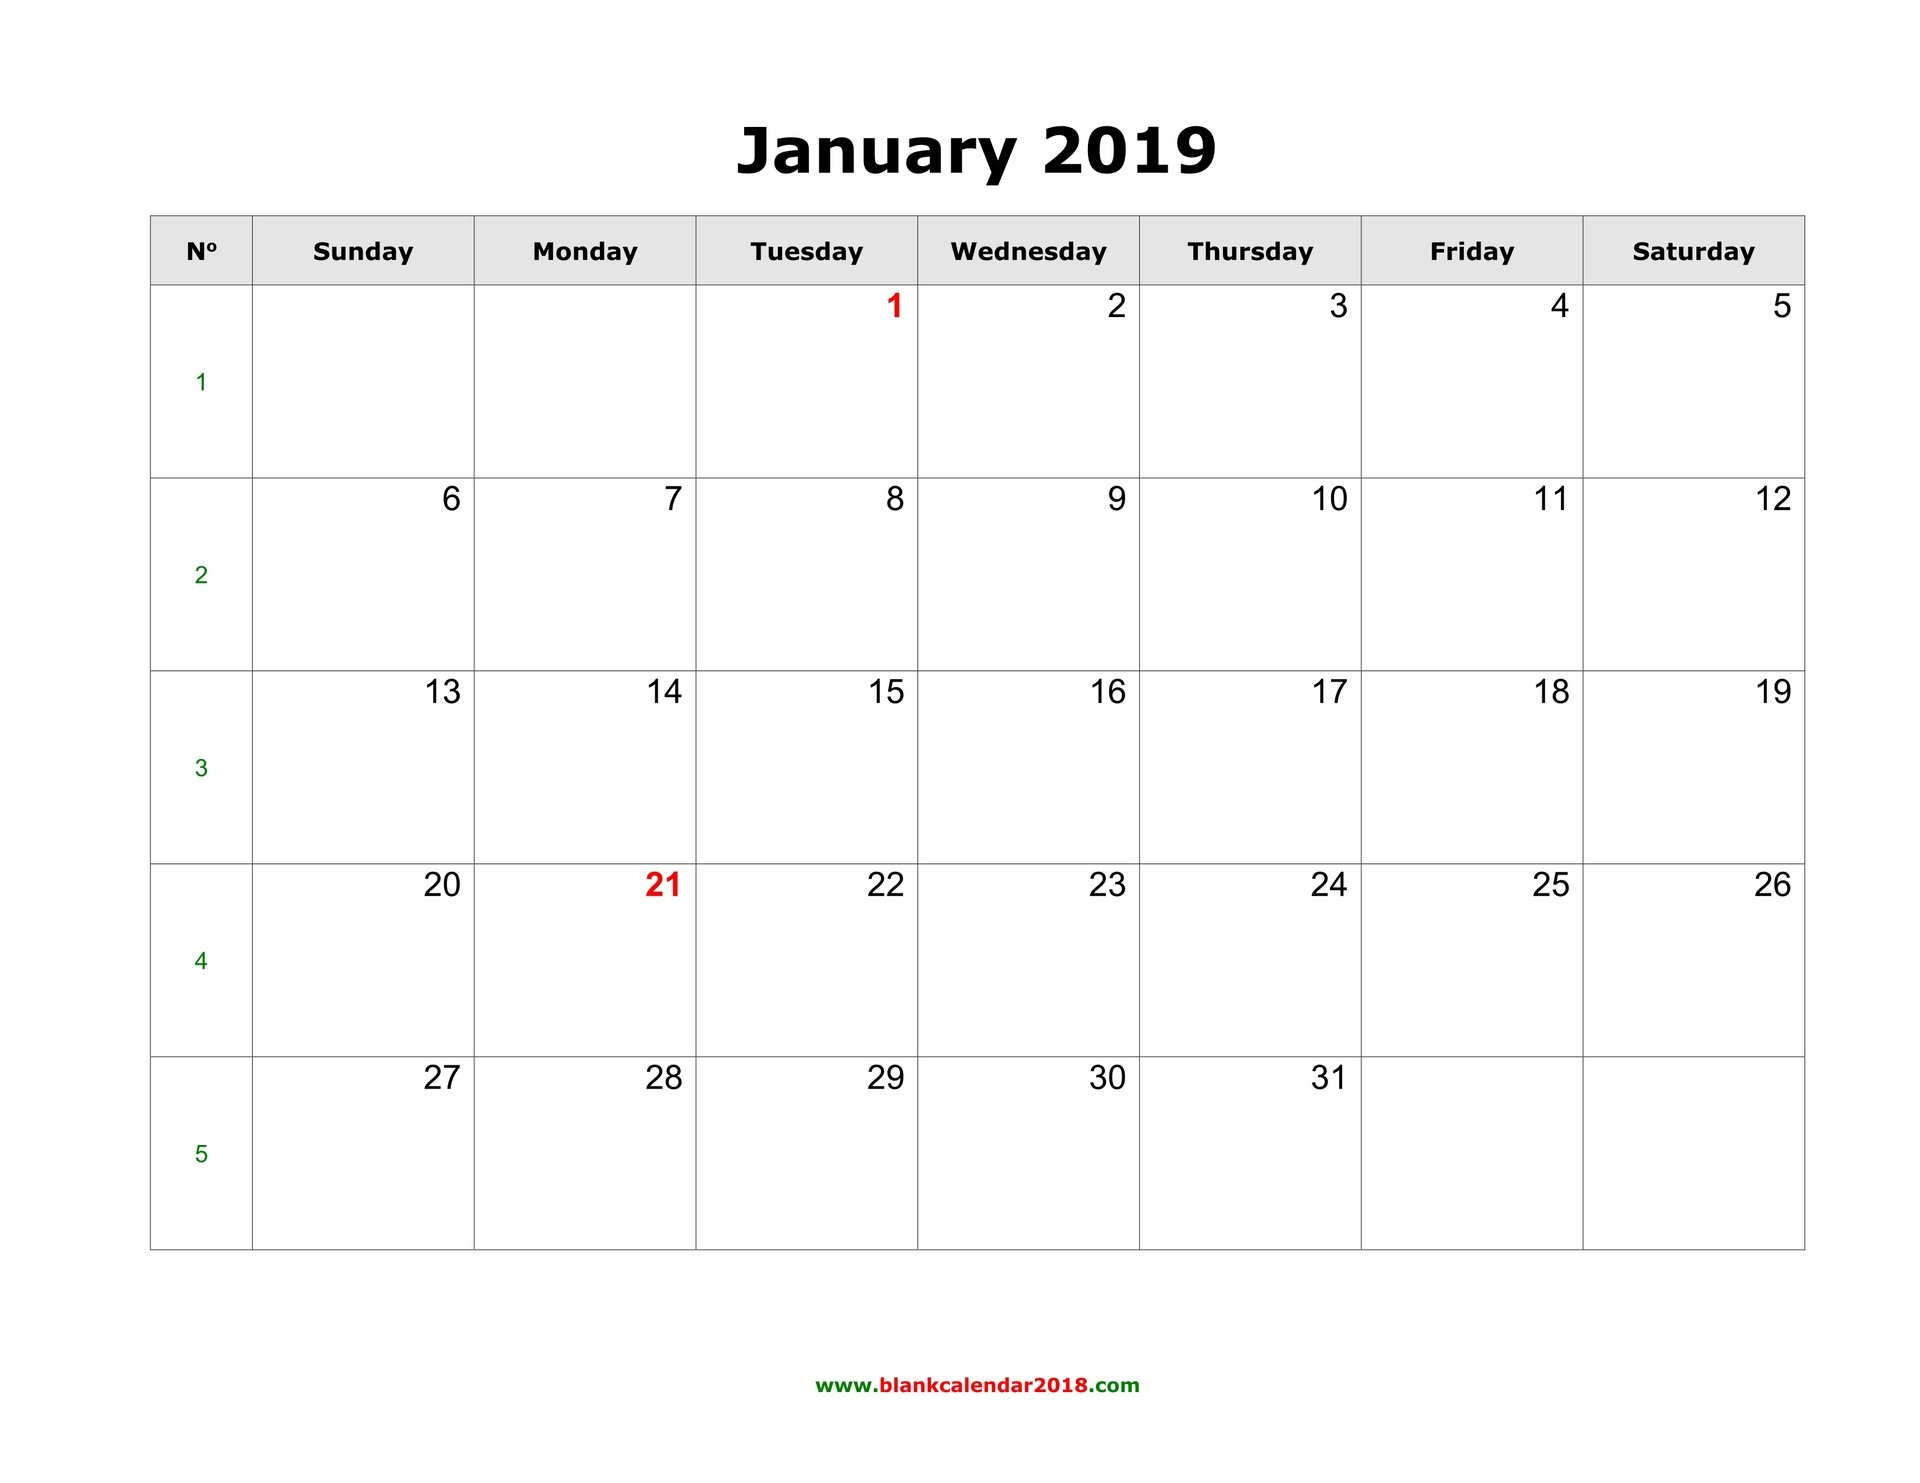 Blank Calendar For January 2019 Calendar 2019 Write In